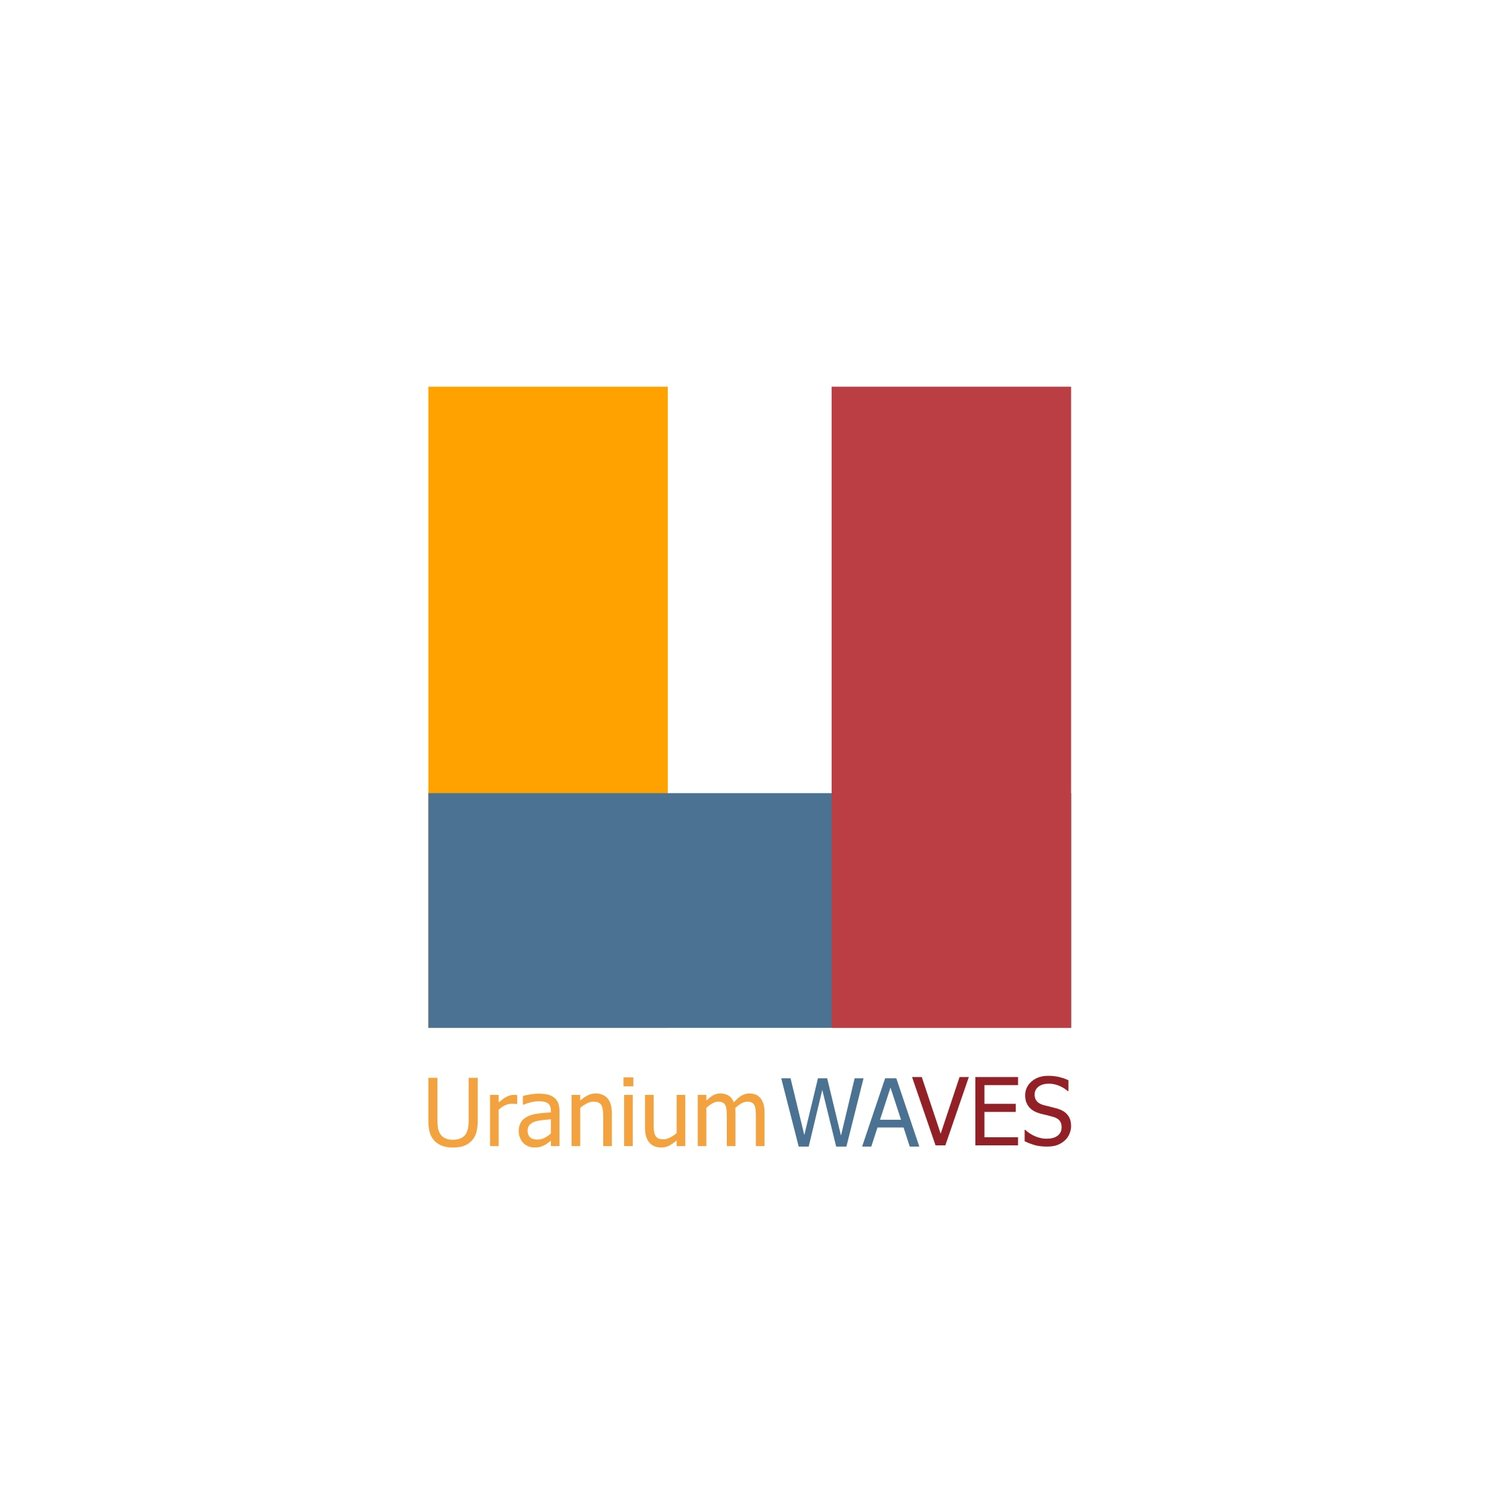 Uranium Waves